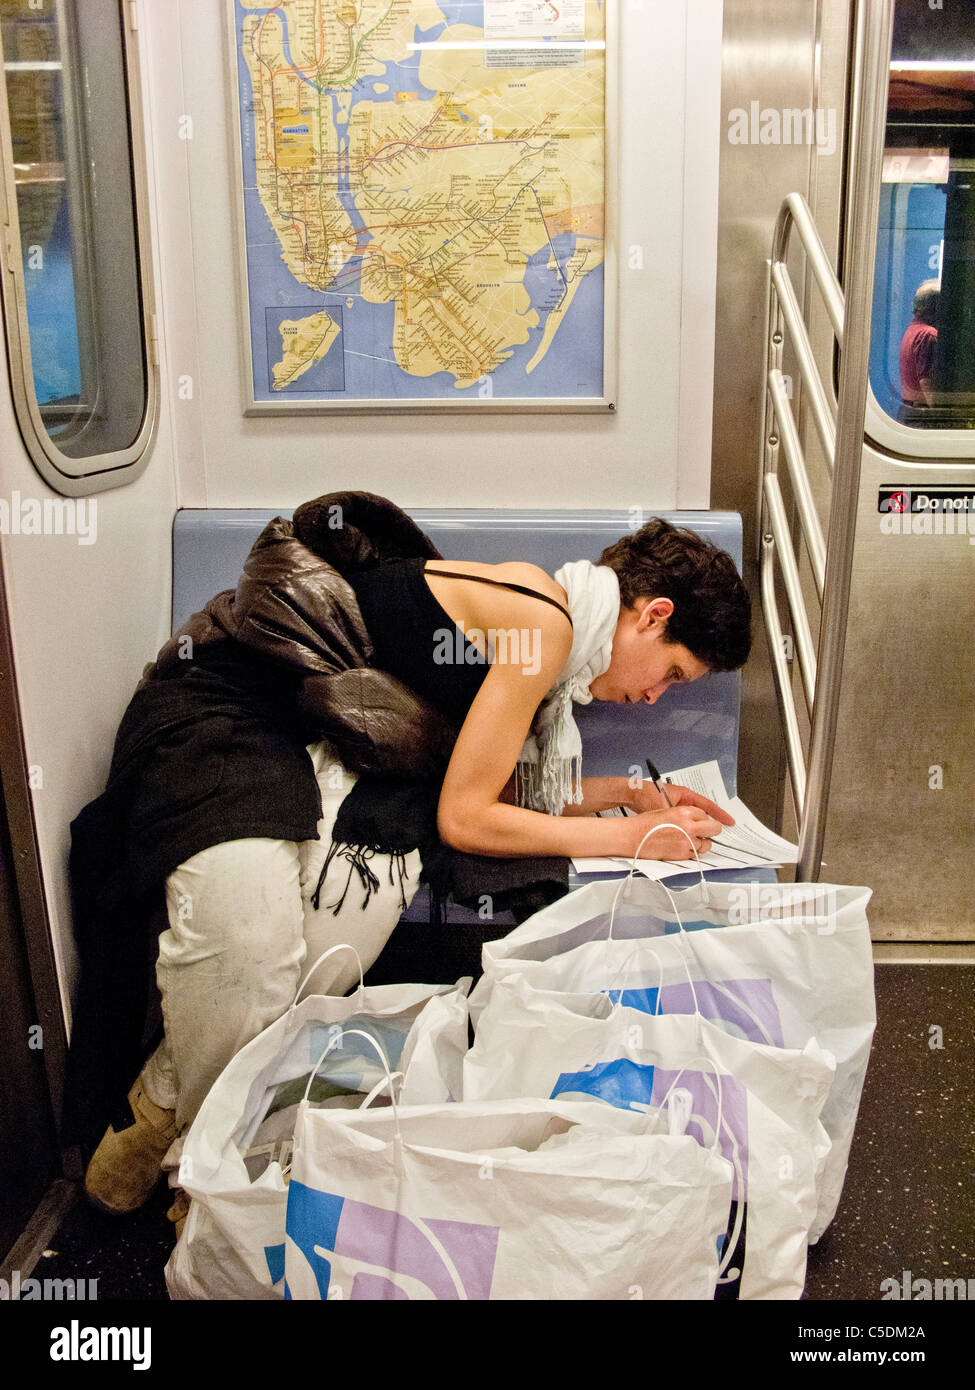 Surrounded by shopping bags, a young woman fills out a job application while riding on the subway in New York City. - Stock Image